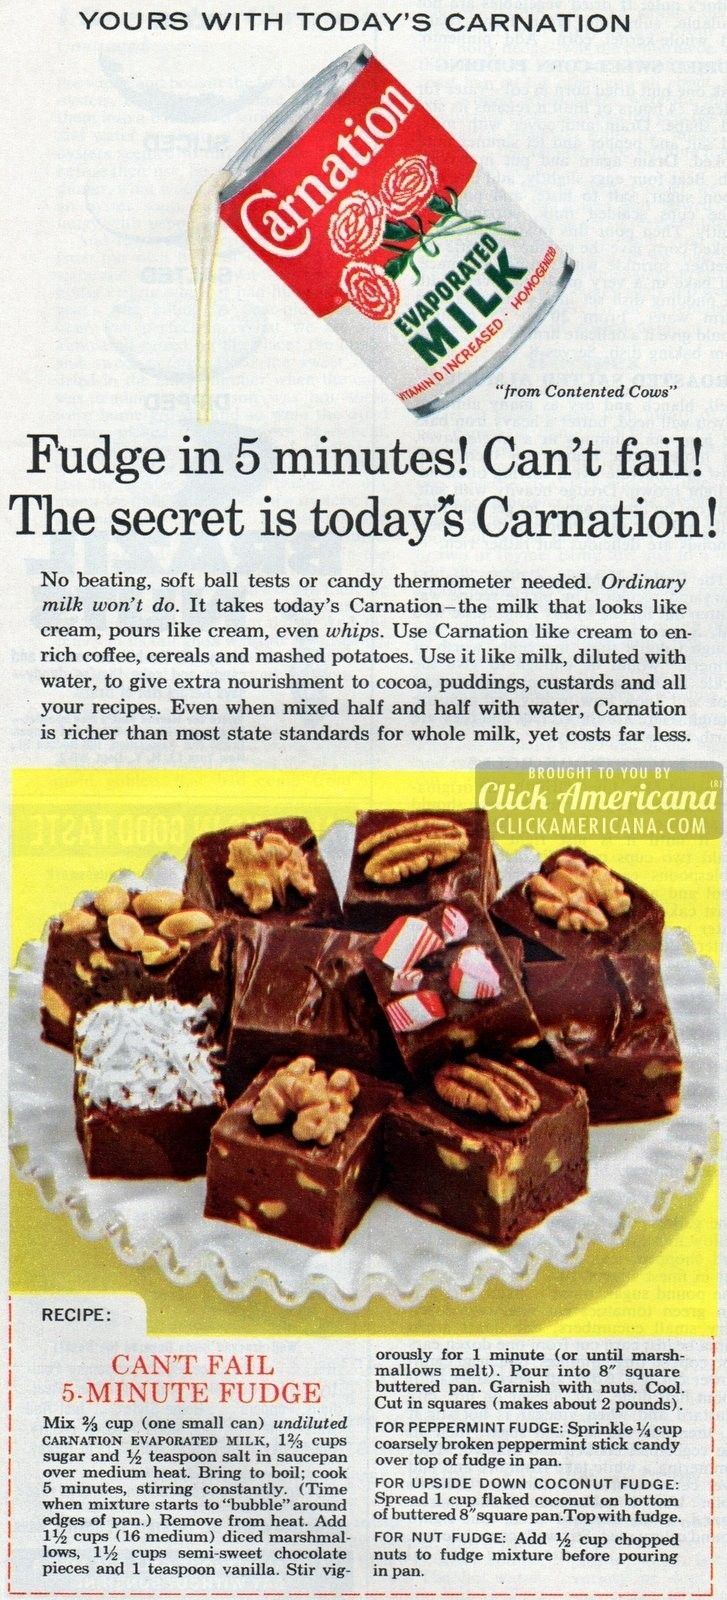 Can't Fail 5-minute Fudge Fudge in 5 minutes! Can't fail! The secret is today's Carnation. No beating, soft ball tests or candy thermometer needed.   Can't Fail 5-minute Fudge recipe Ingredients 2/3 cup evaporated milk, undiluted 1-2/3 cups sugar 1/2 teaspoon salt 1 1/2 cups marshmallows, diced 1-1/2 cups semisweet chocolate chips 1 teaspoon vanilla …